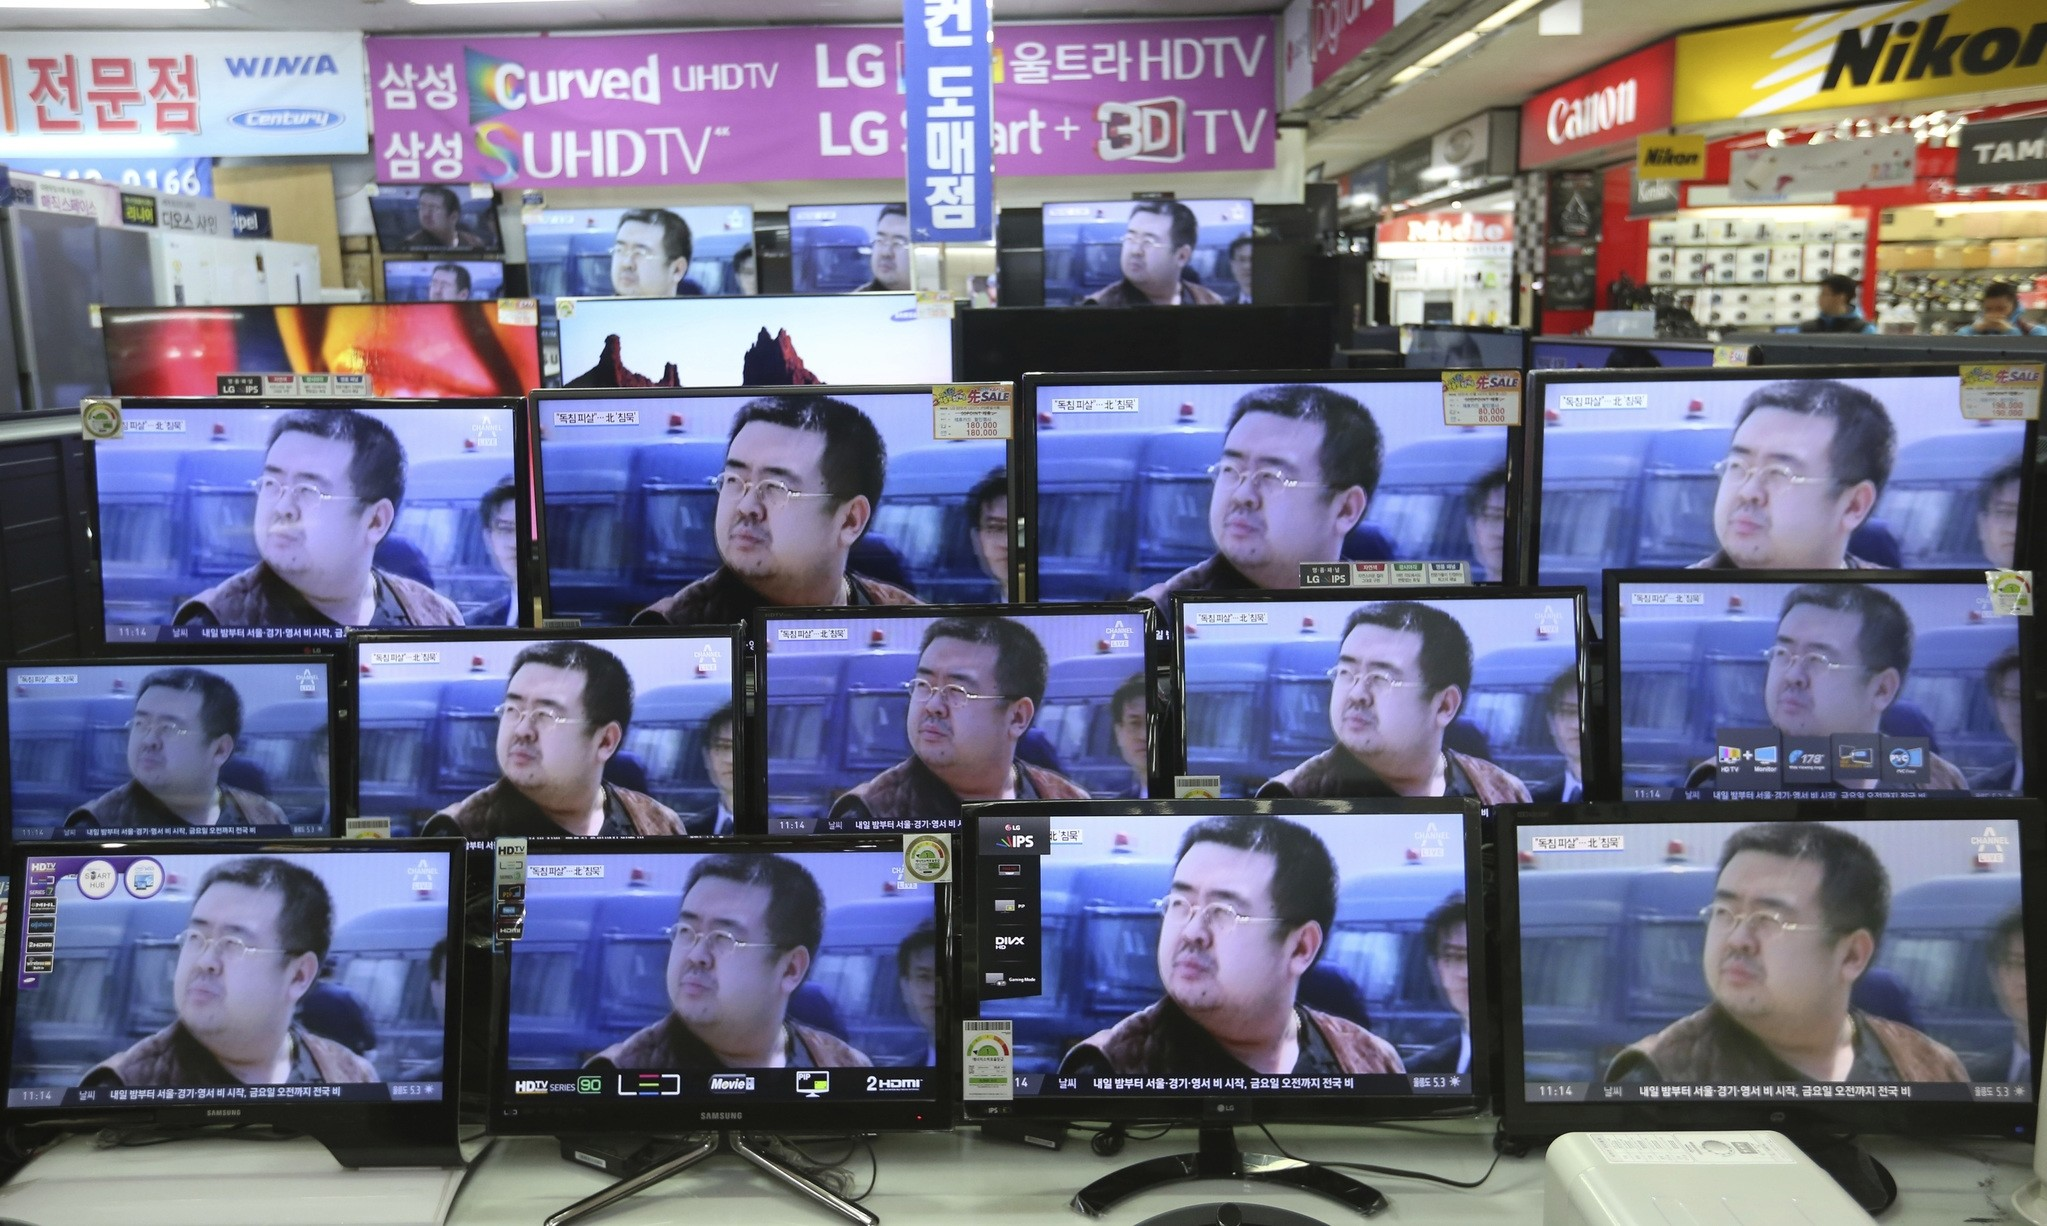 TV screens show pictures of Kim Jong Nam, the half-brother of North Korean leader Kim Jong Un, at an electronic store in Seoul, South Korea, Wednesday, Feb. 15, 2017. (AP Photo)